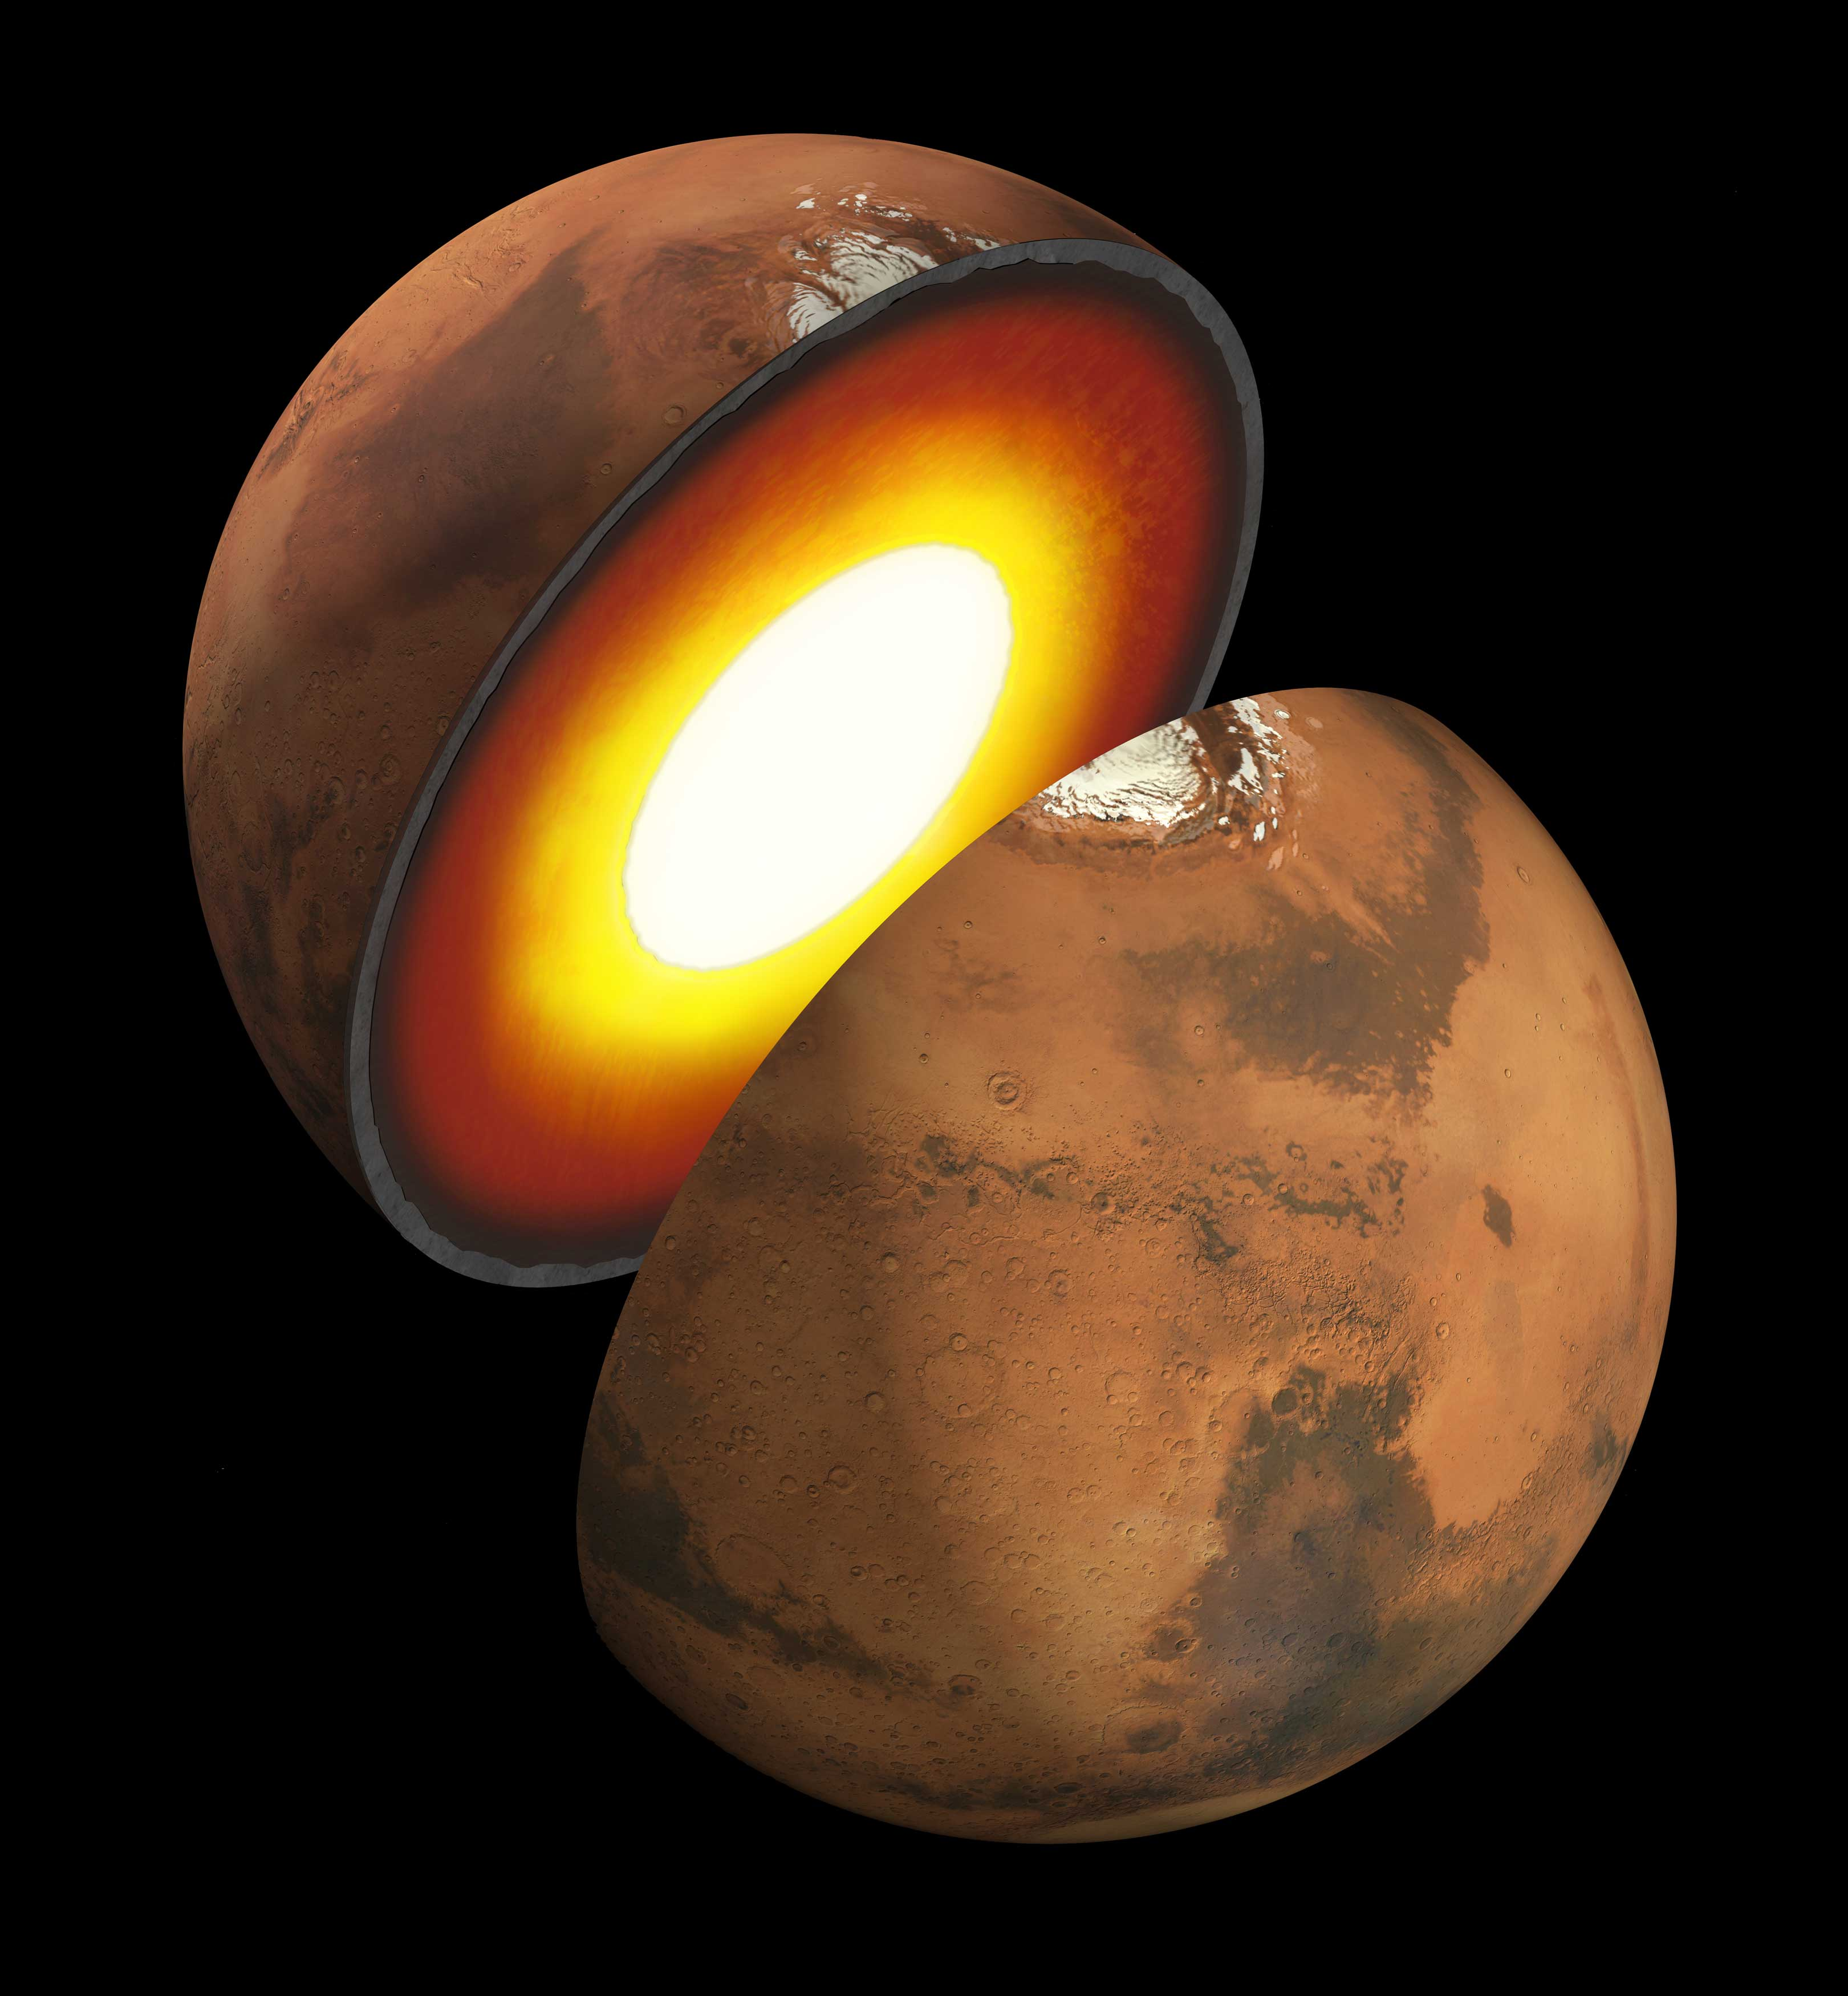 Artist's rendition showing the inner structure of Mars.